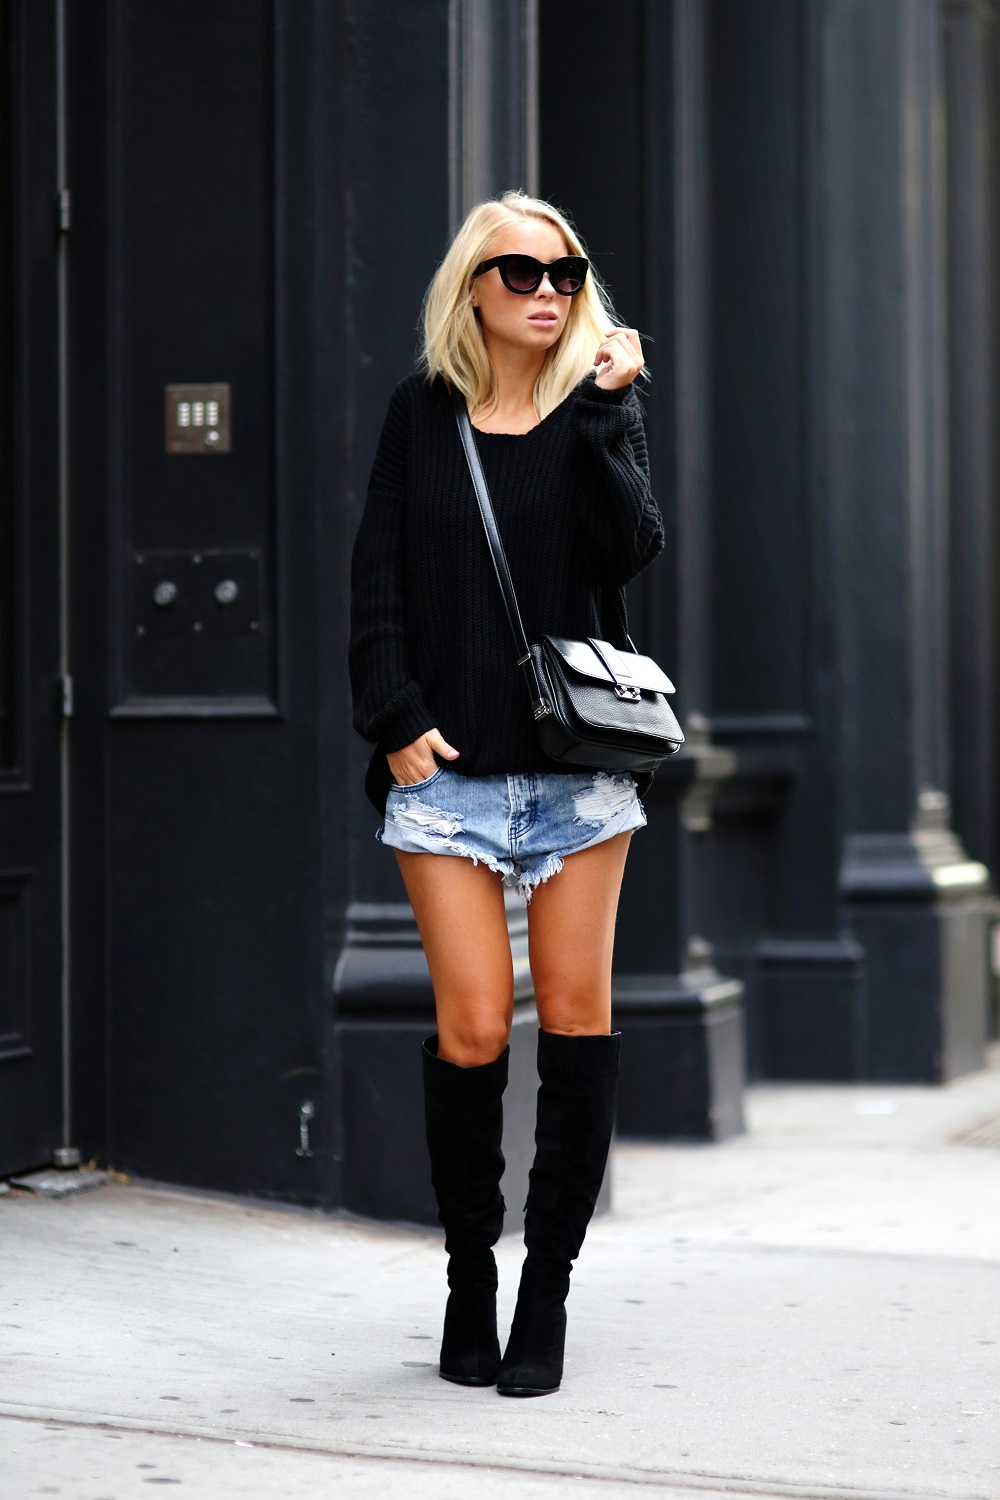 Victoria Tornegren is wearing boots from Zara, black knit sweater from H&M, denim shorts from One Teaspoon, sunglasses from Asos and the bag is from Mango